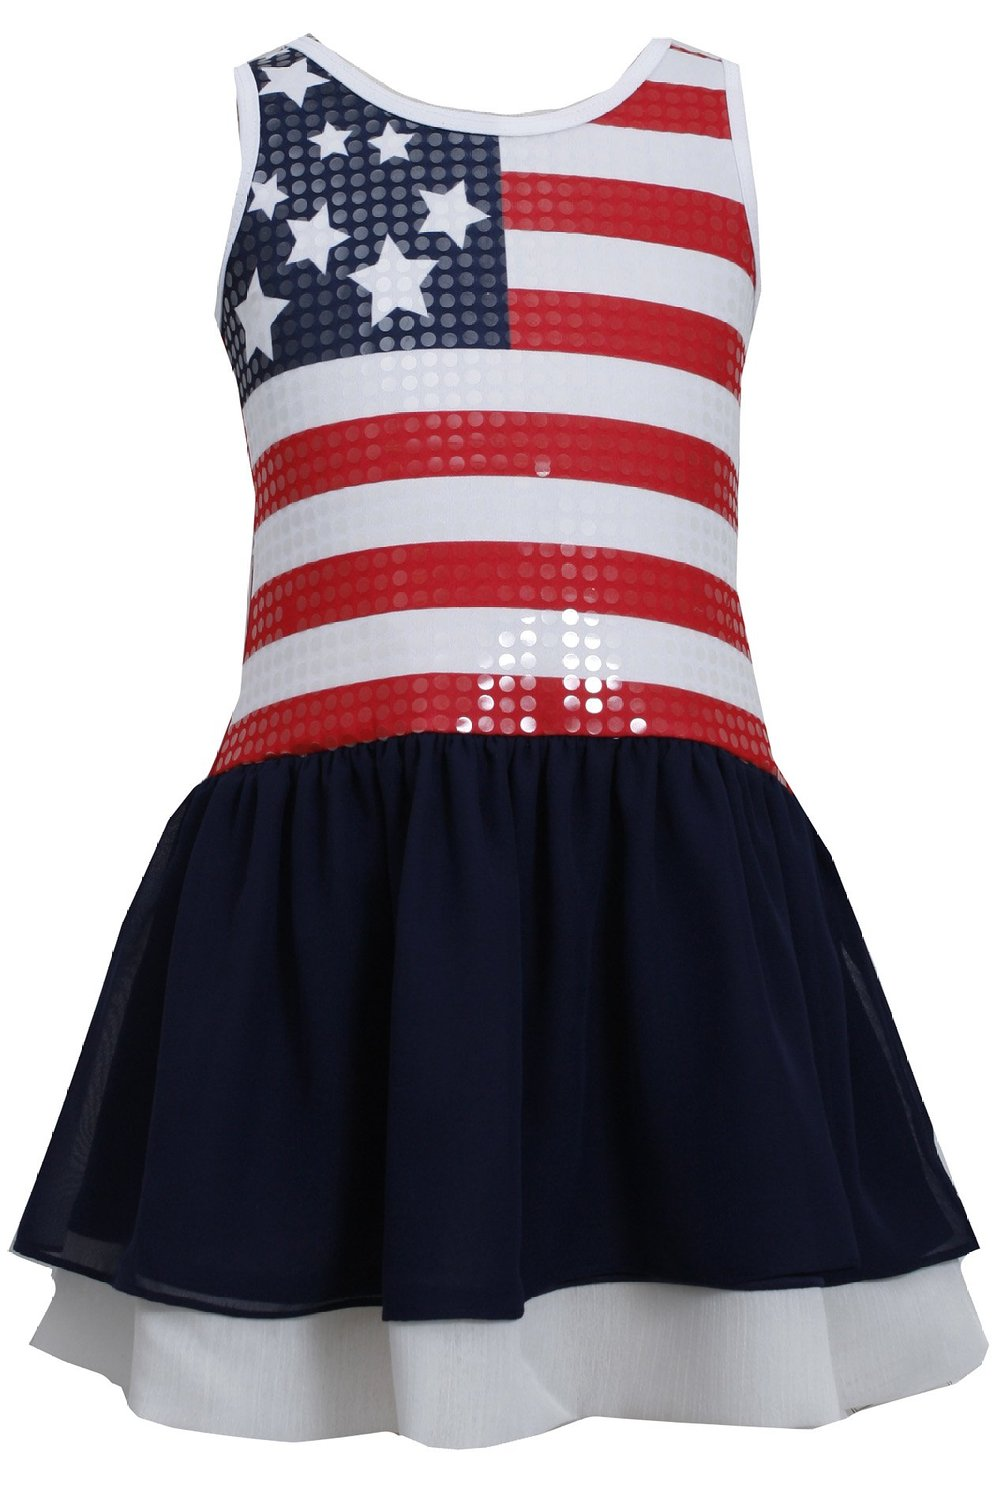 Girls red white blue sequin american flag patriotic dress